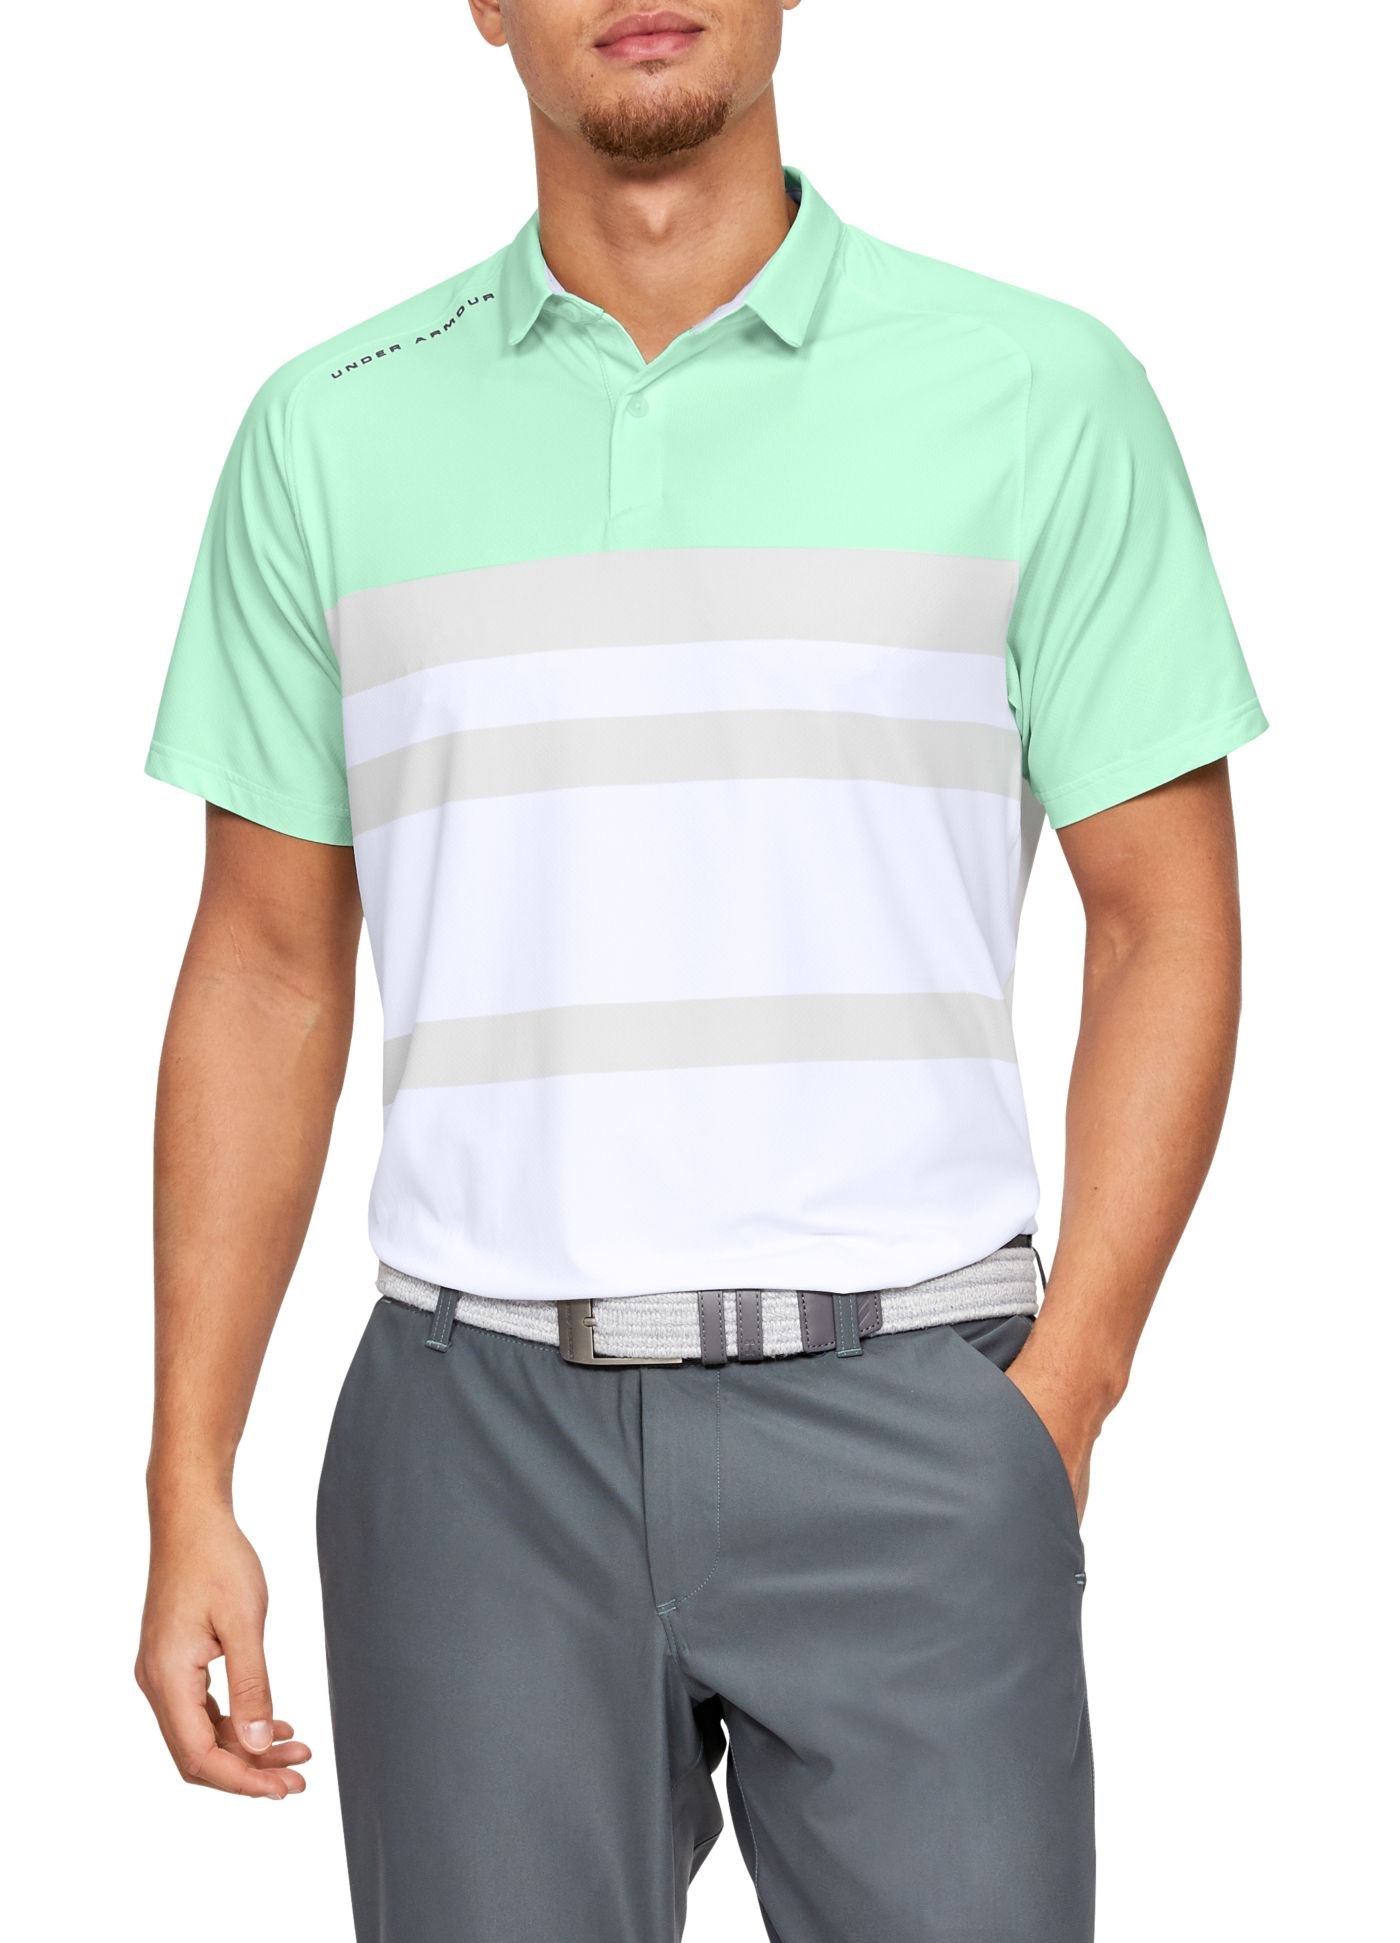 Under Armour Men's Iso-Chill Block Golf Polo